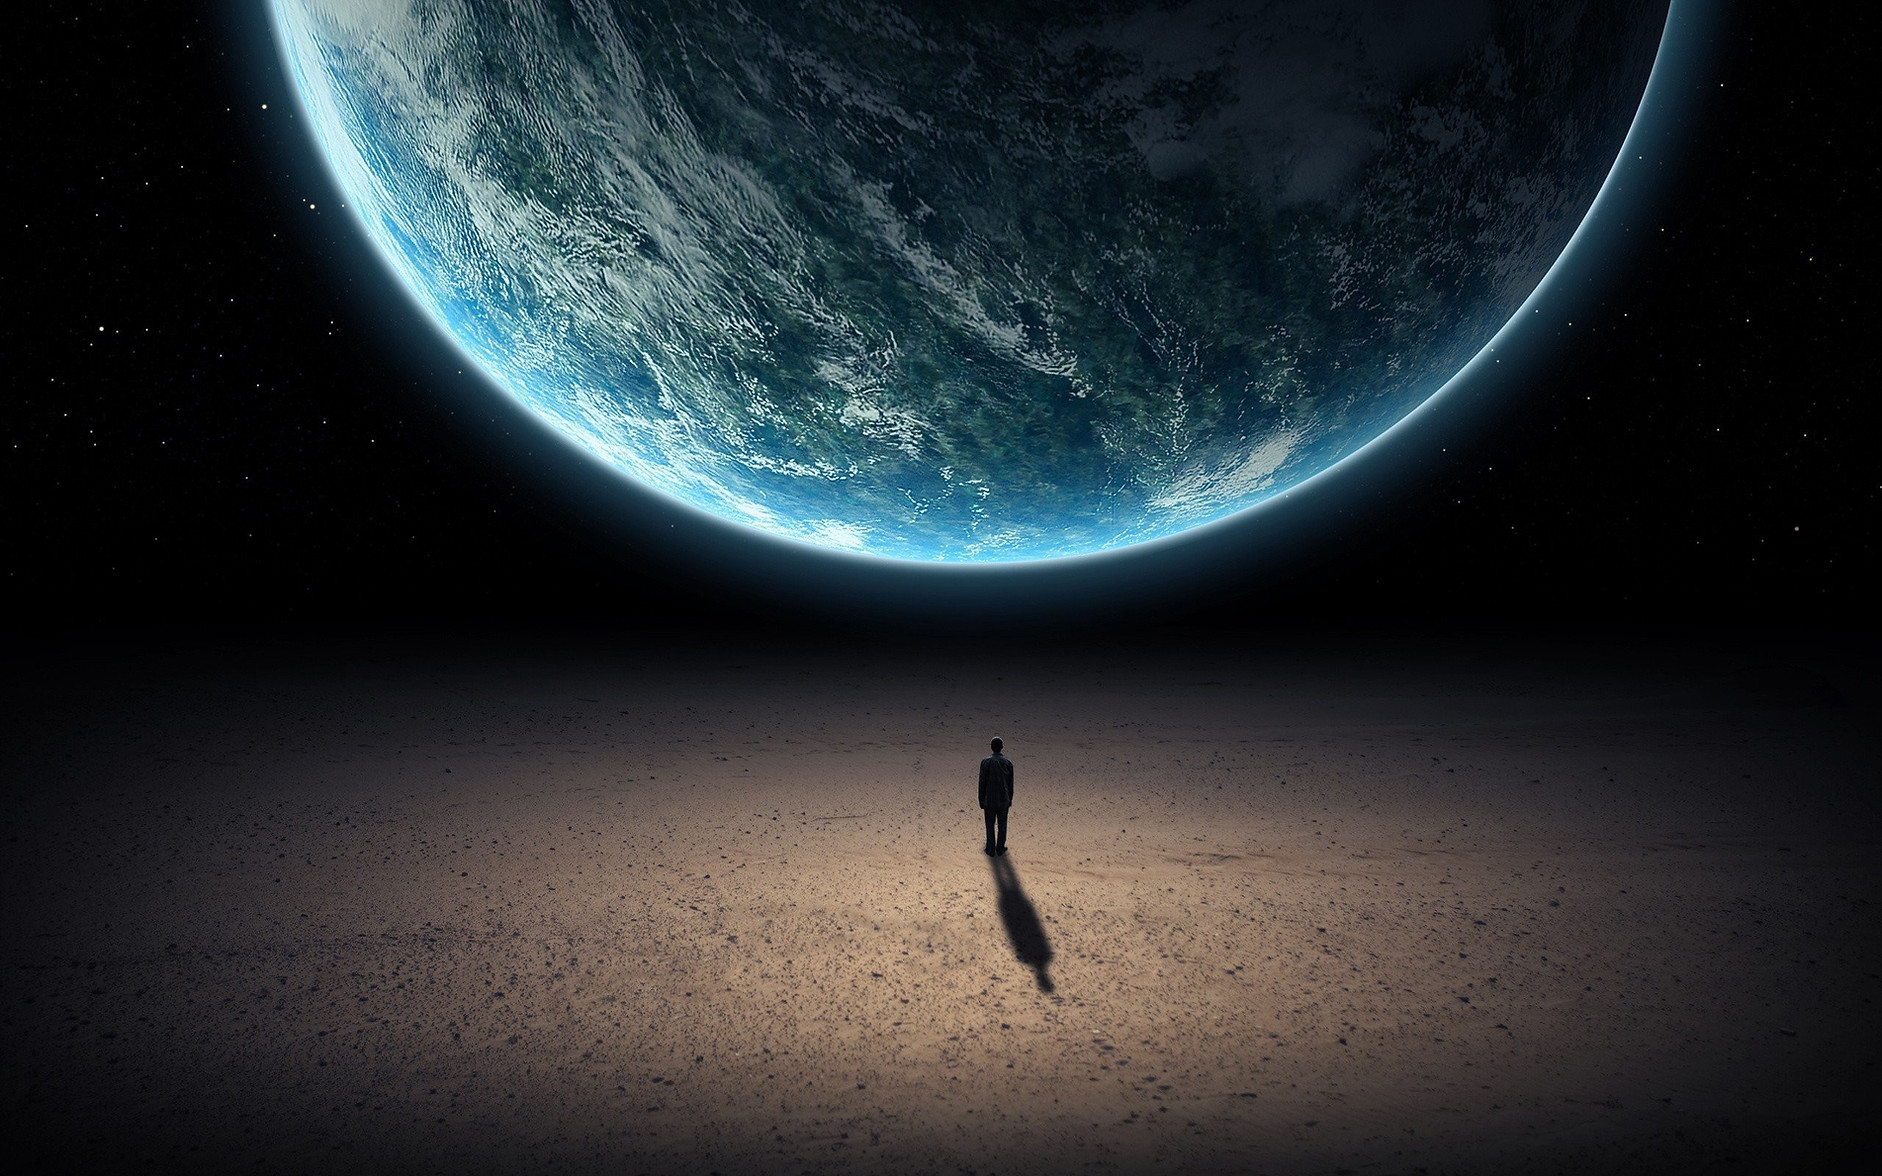 earth-view-free-background-images-iphone